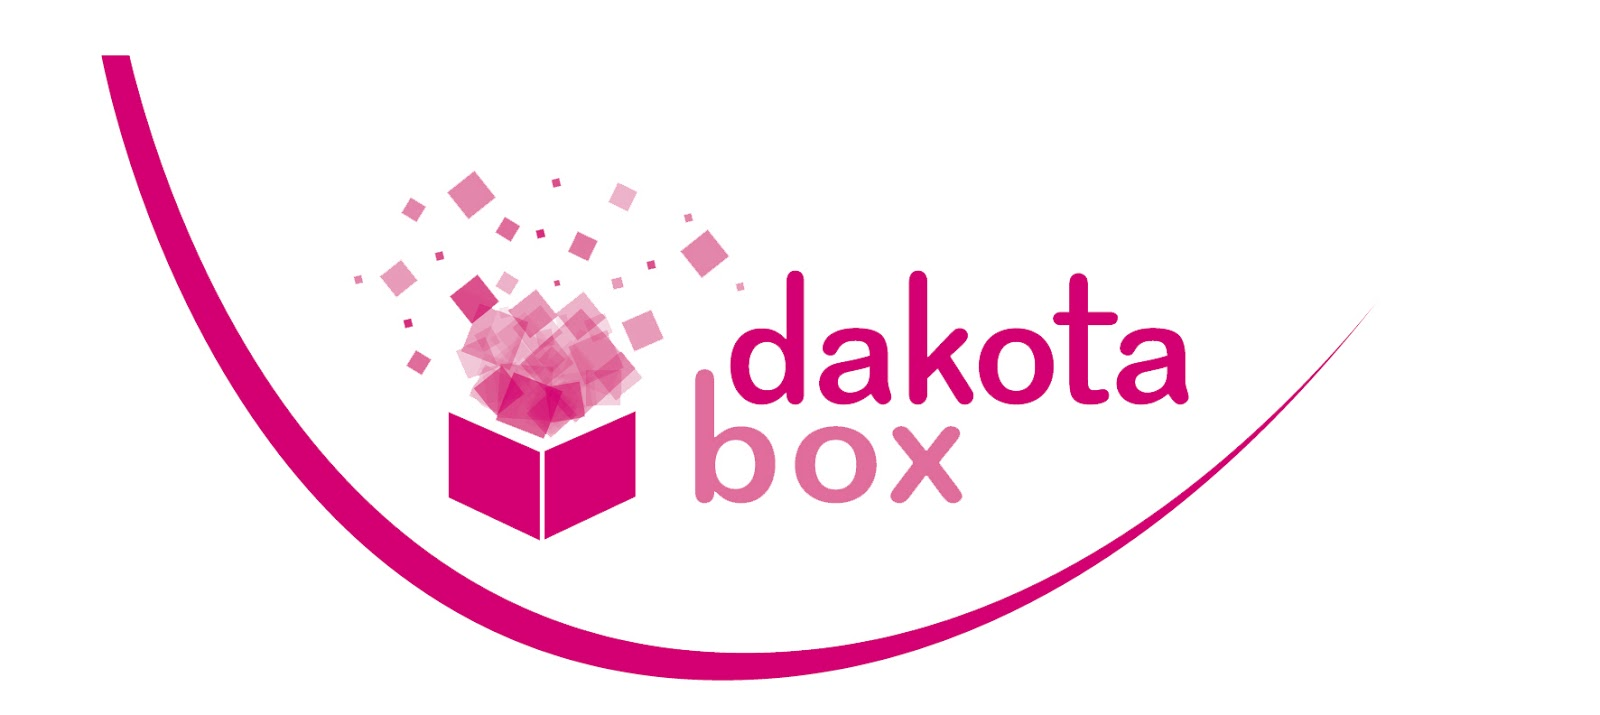 el blog de aceber dakotabox